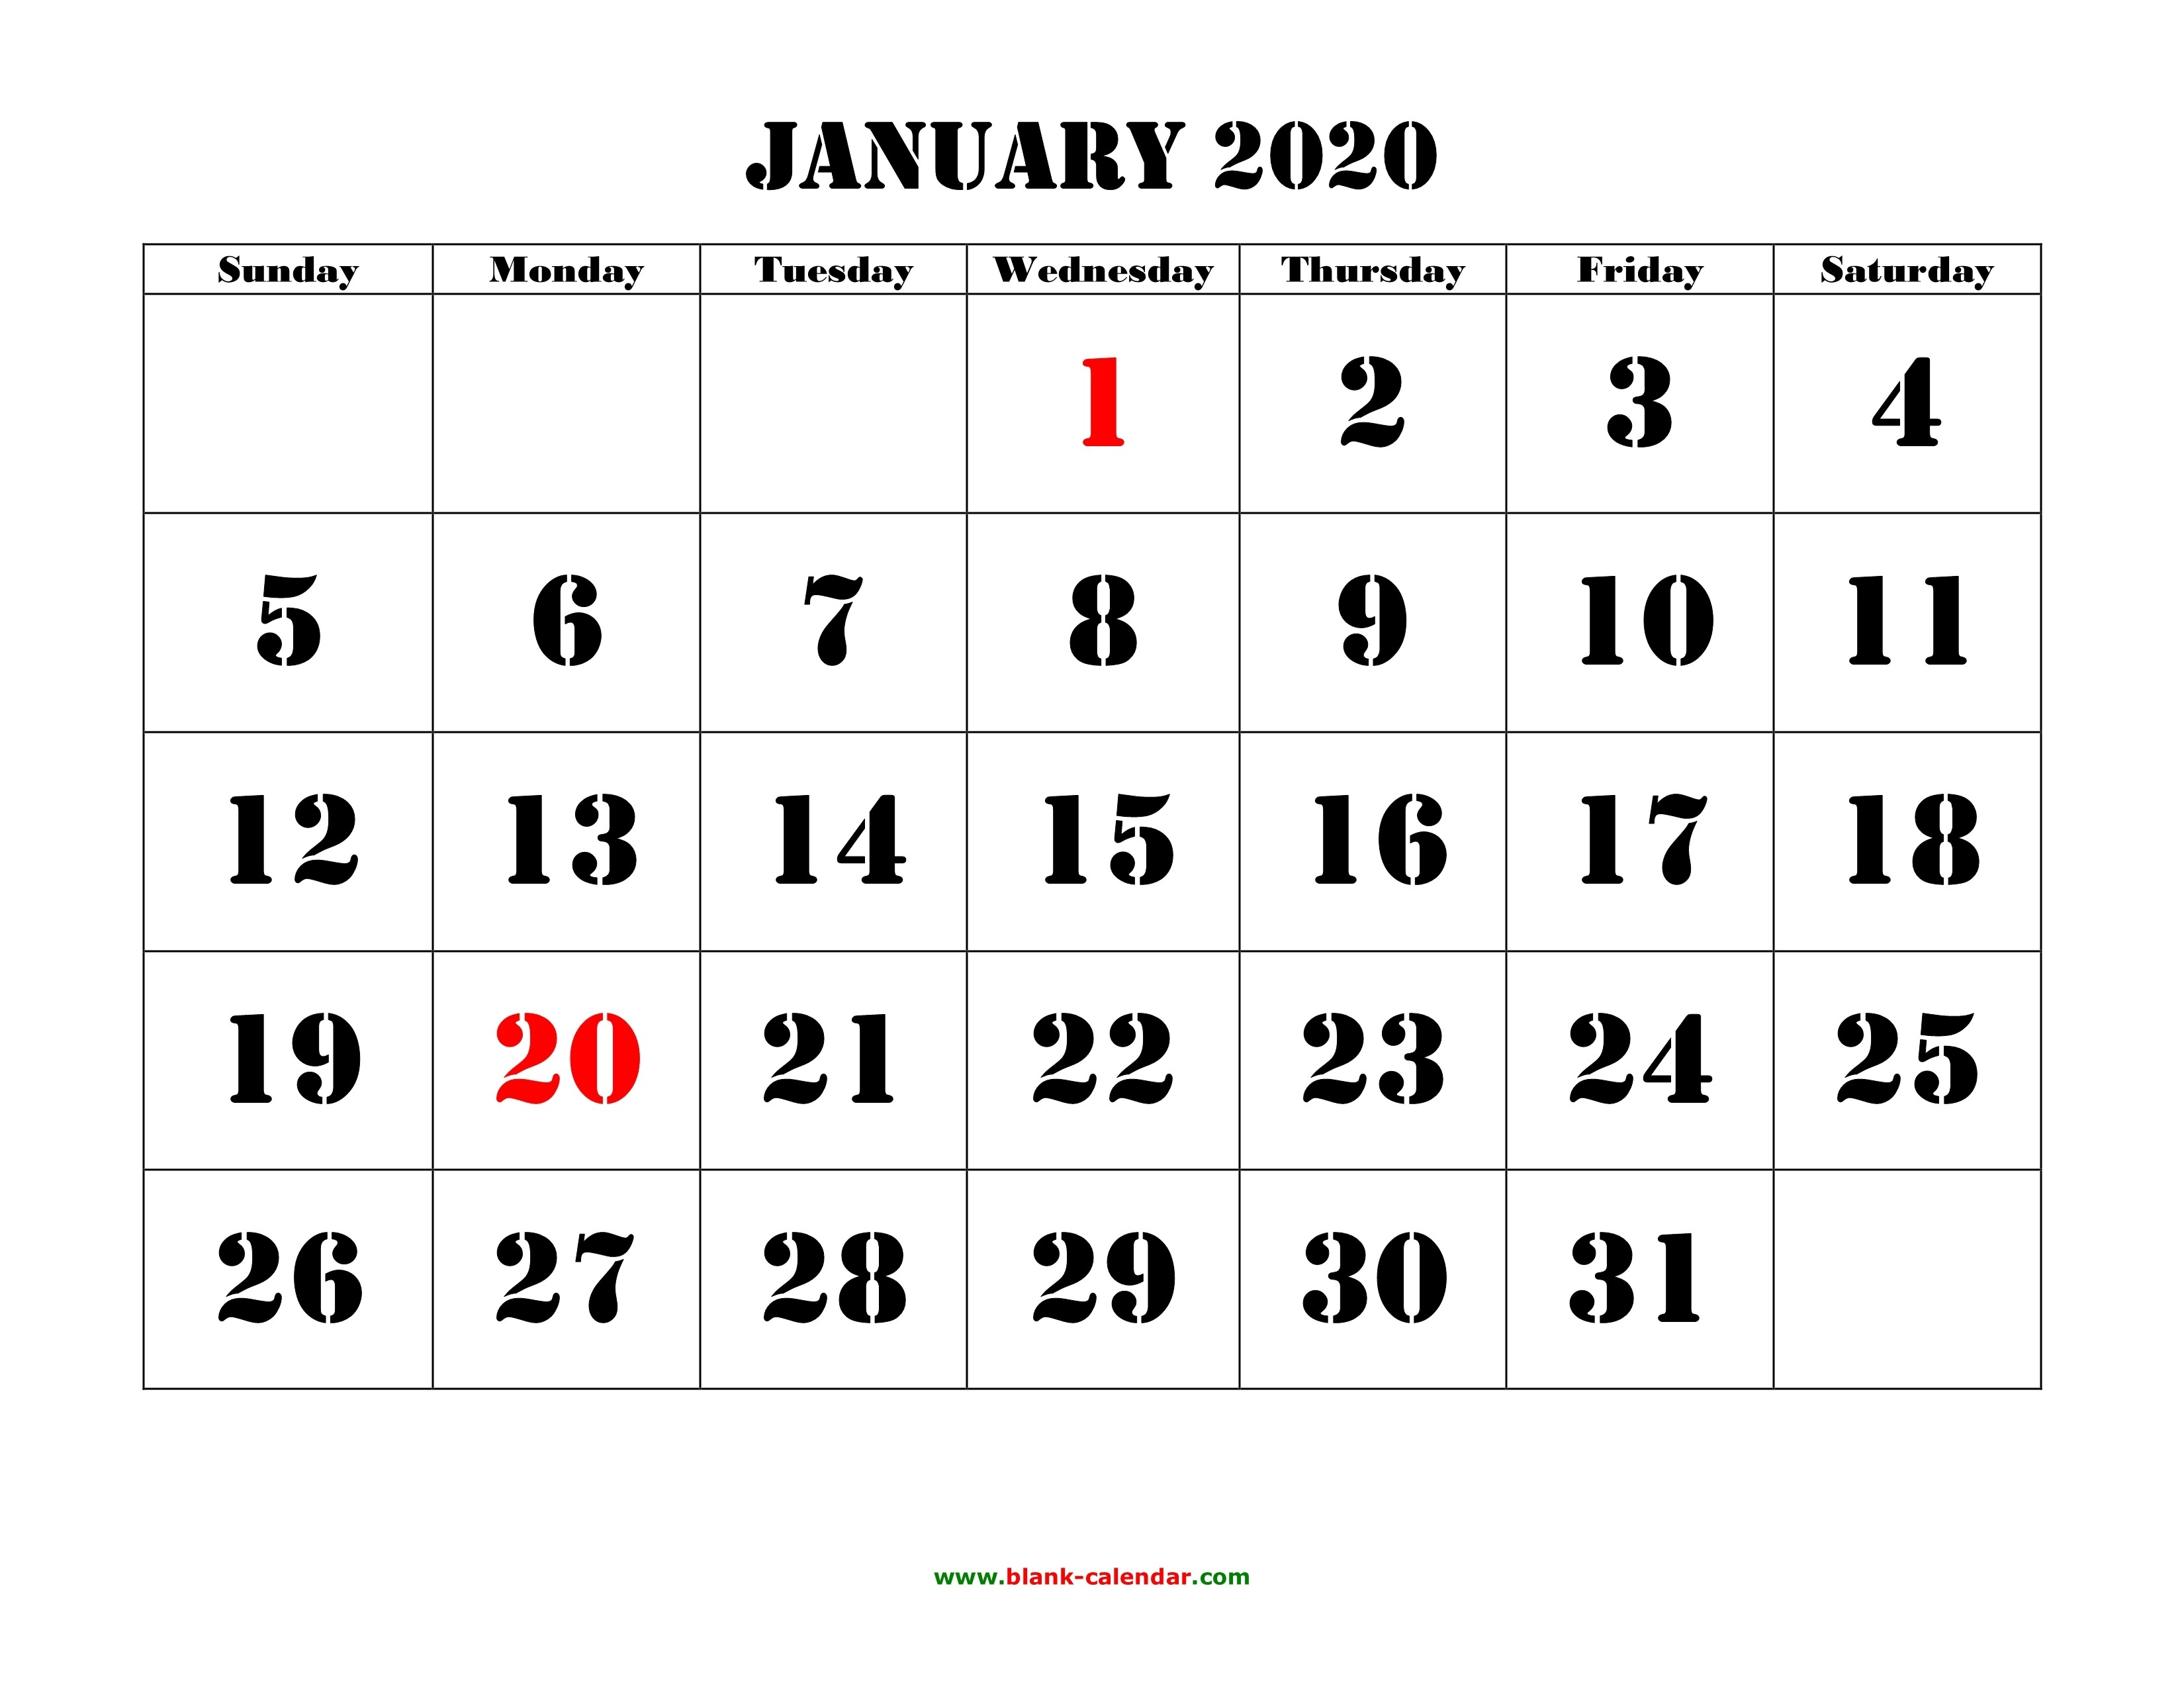 Printable Calendar 2020 | Free Download Yearly Calendar-2 Page Monthly Calendar Printable 2020